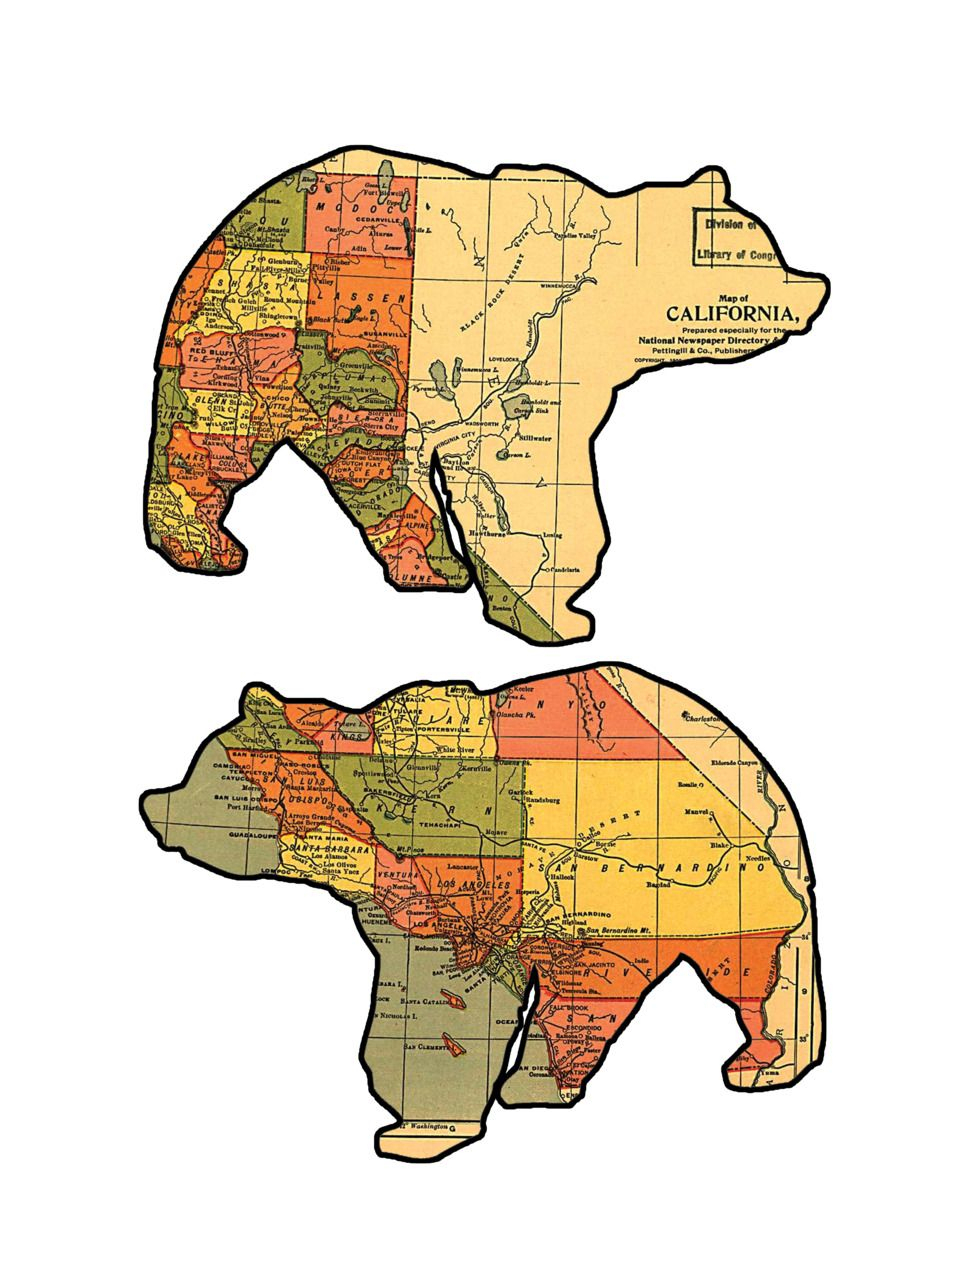 California Grizzly Bear Maps. | Maps, Maps, Maps | Pinterest - Bears In California Map